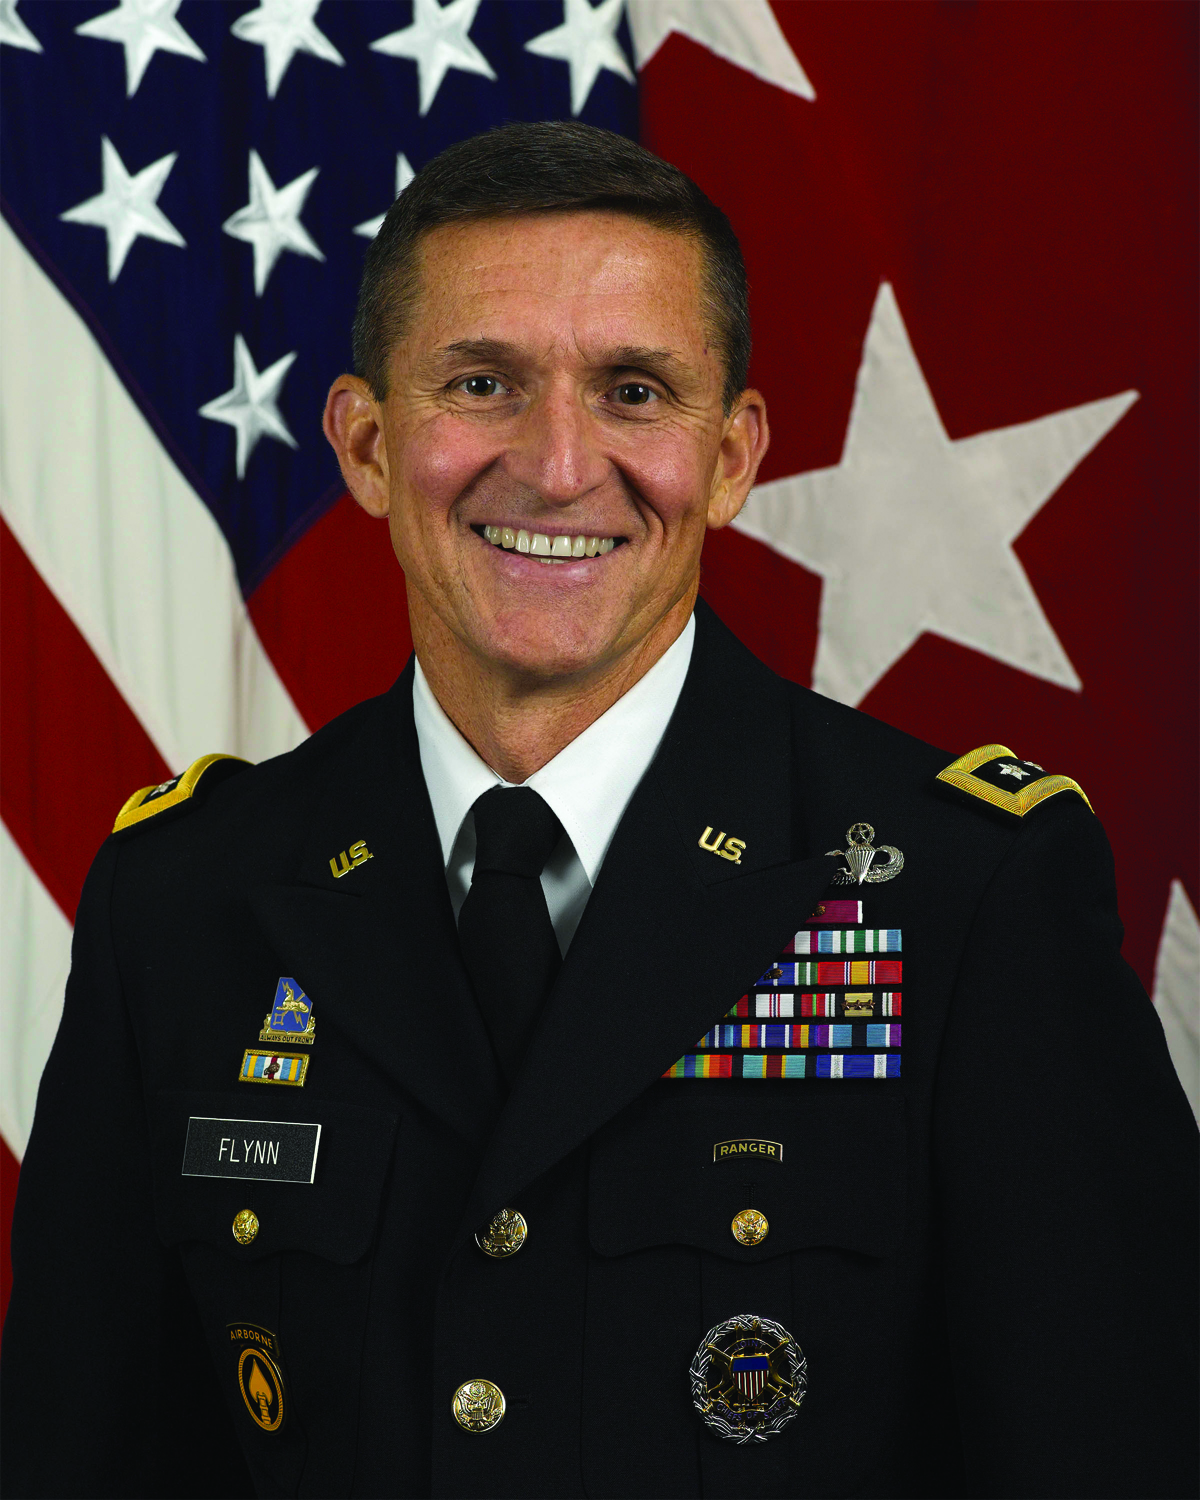 DIA Director, Army Lt. Gen. Michael T. Flynn, has set out to transform defense intelligence.